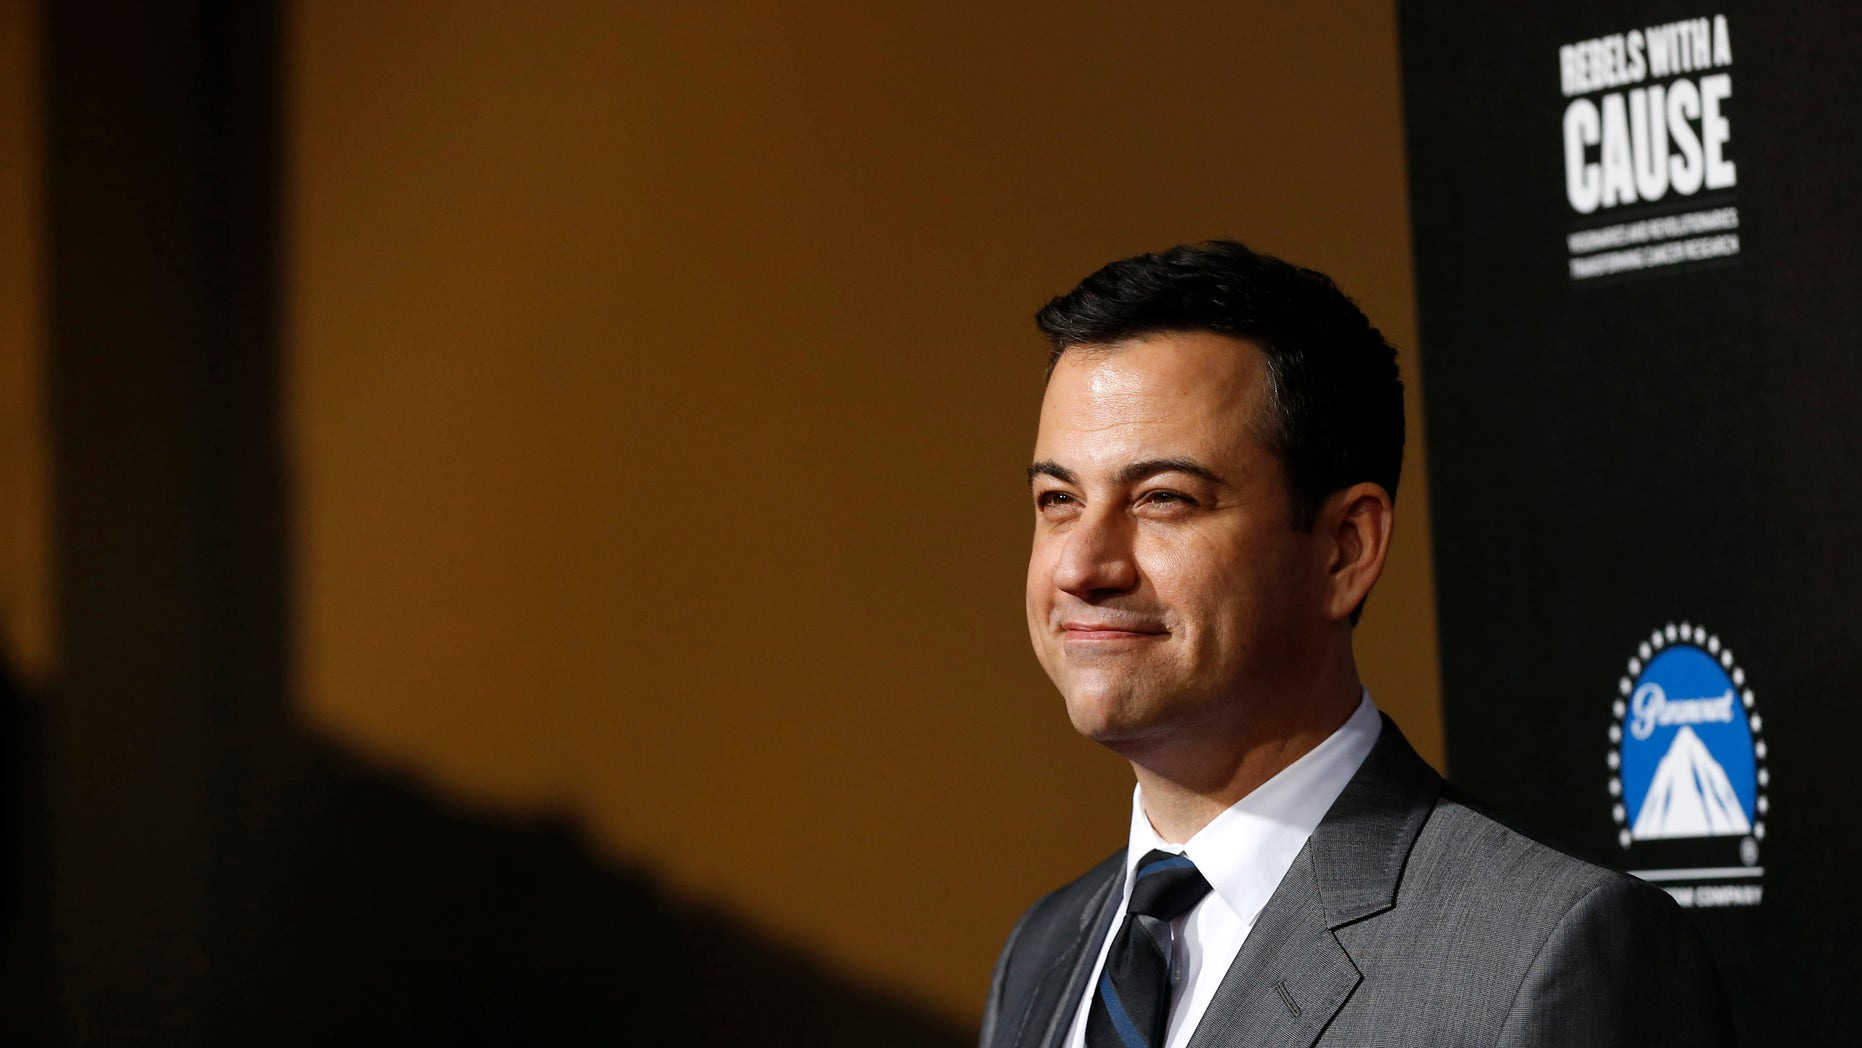 """Television host Jimmy Kimmel poses at the second annual """"Rebels With a Cause"""" gala at Paramount Pictures Studios in Los Angeles, California March 20, 2014. REUTERS/Mario Anzuoni"""